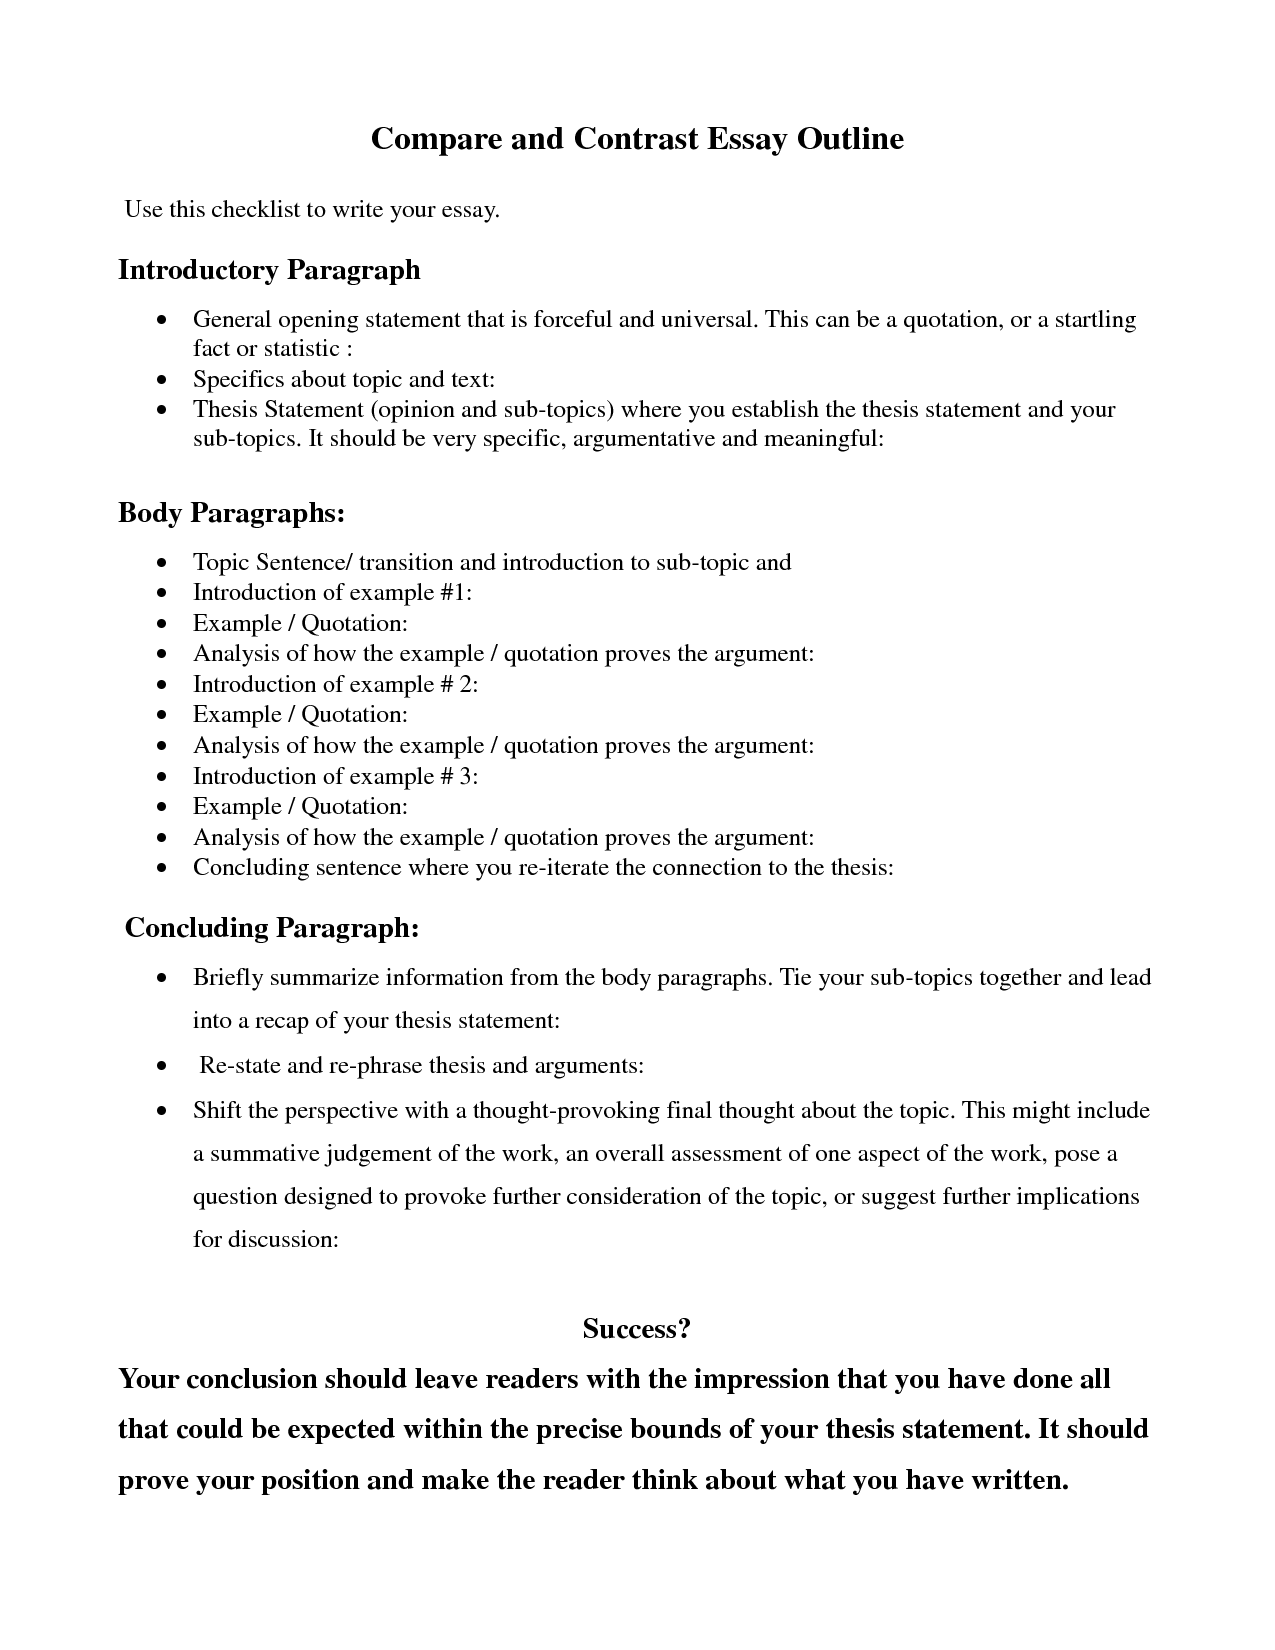 Essay On Business Management Essay Sample Essay High School Sample Essay High School College Persuasive  Essay Topics Outline Tips Essaypro Science And Technology Essay Topics also Computer Science Essay Ap Biology Exam Essays  Sample Cover Letter Apa Style Buy Top  English Reflective Essay Example